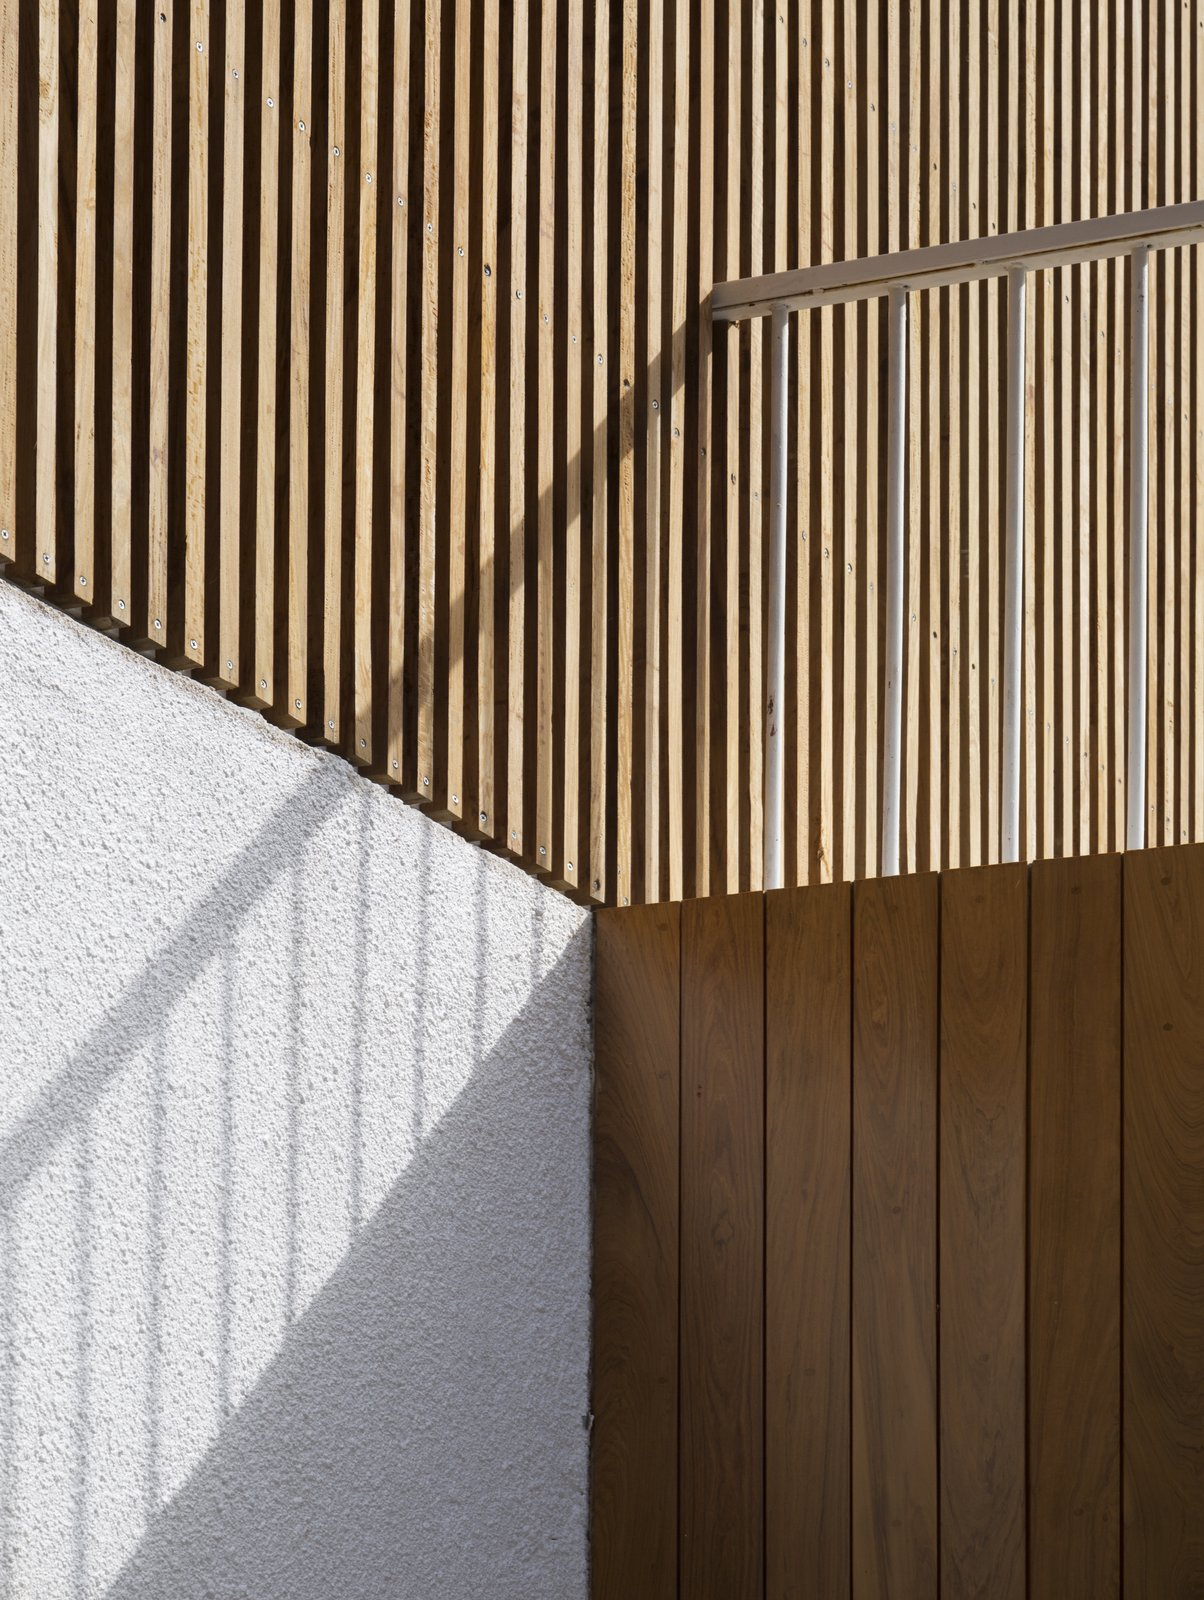 Detail Tagged: Outdoor, Vertical Fence, Wood Patio, Porch, Deck, Wood Fence, Concrete Patio, Porch, Deck, and Front Yard. Casa Plaza by mass arquitectos